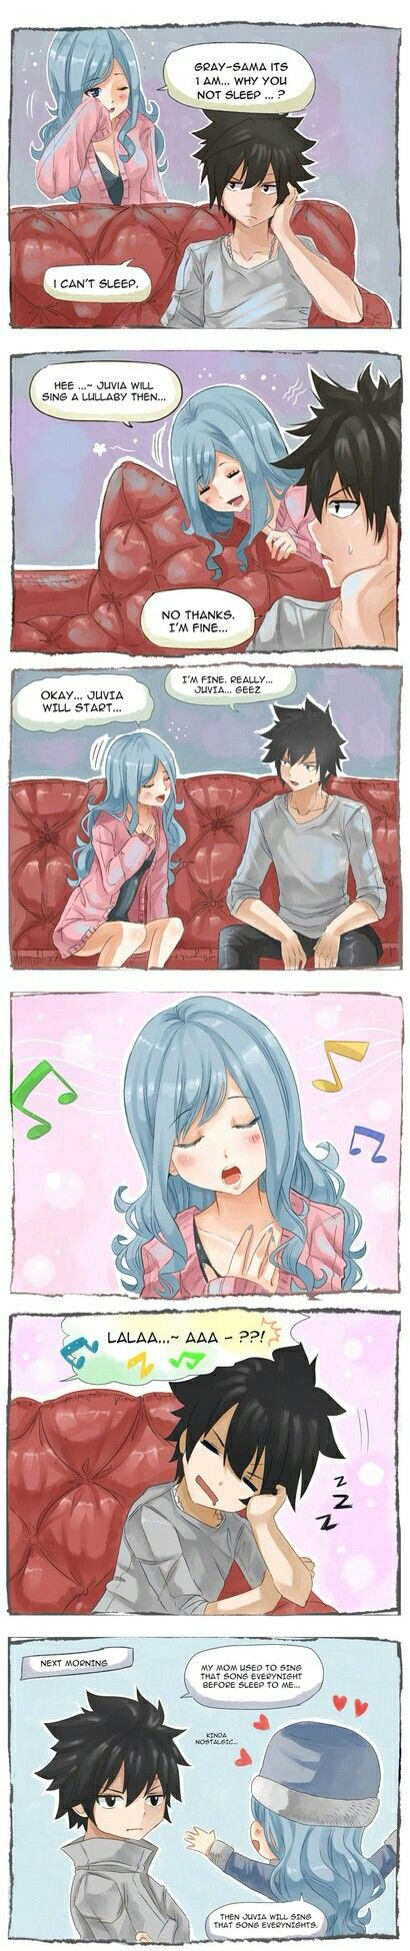 Oh My Mavis!!! This is adorable >///< ♡♡♡♡♡♡♡♡♡♡♡♡♡♡